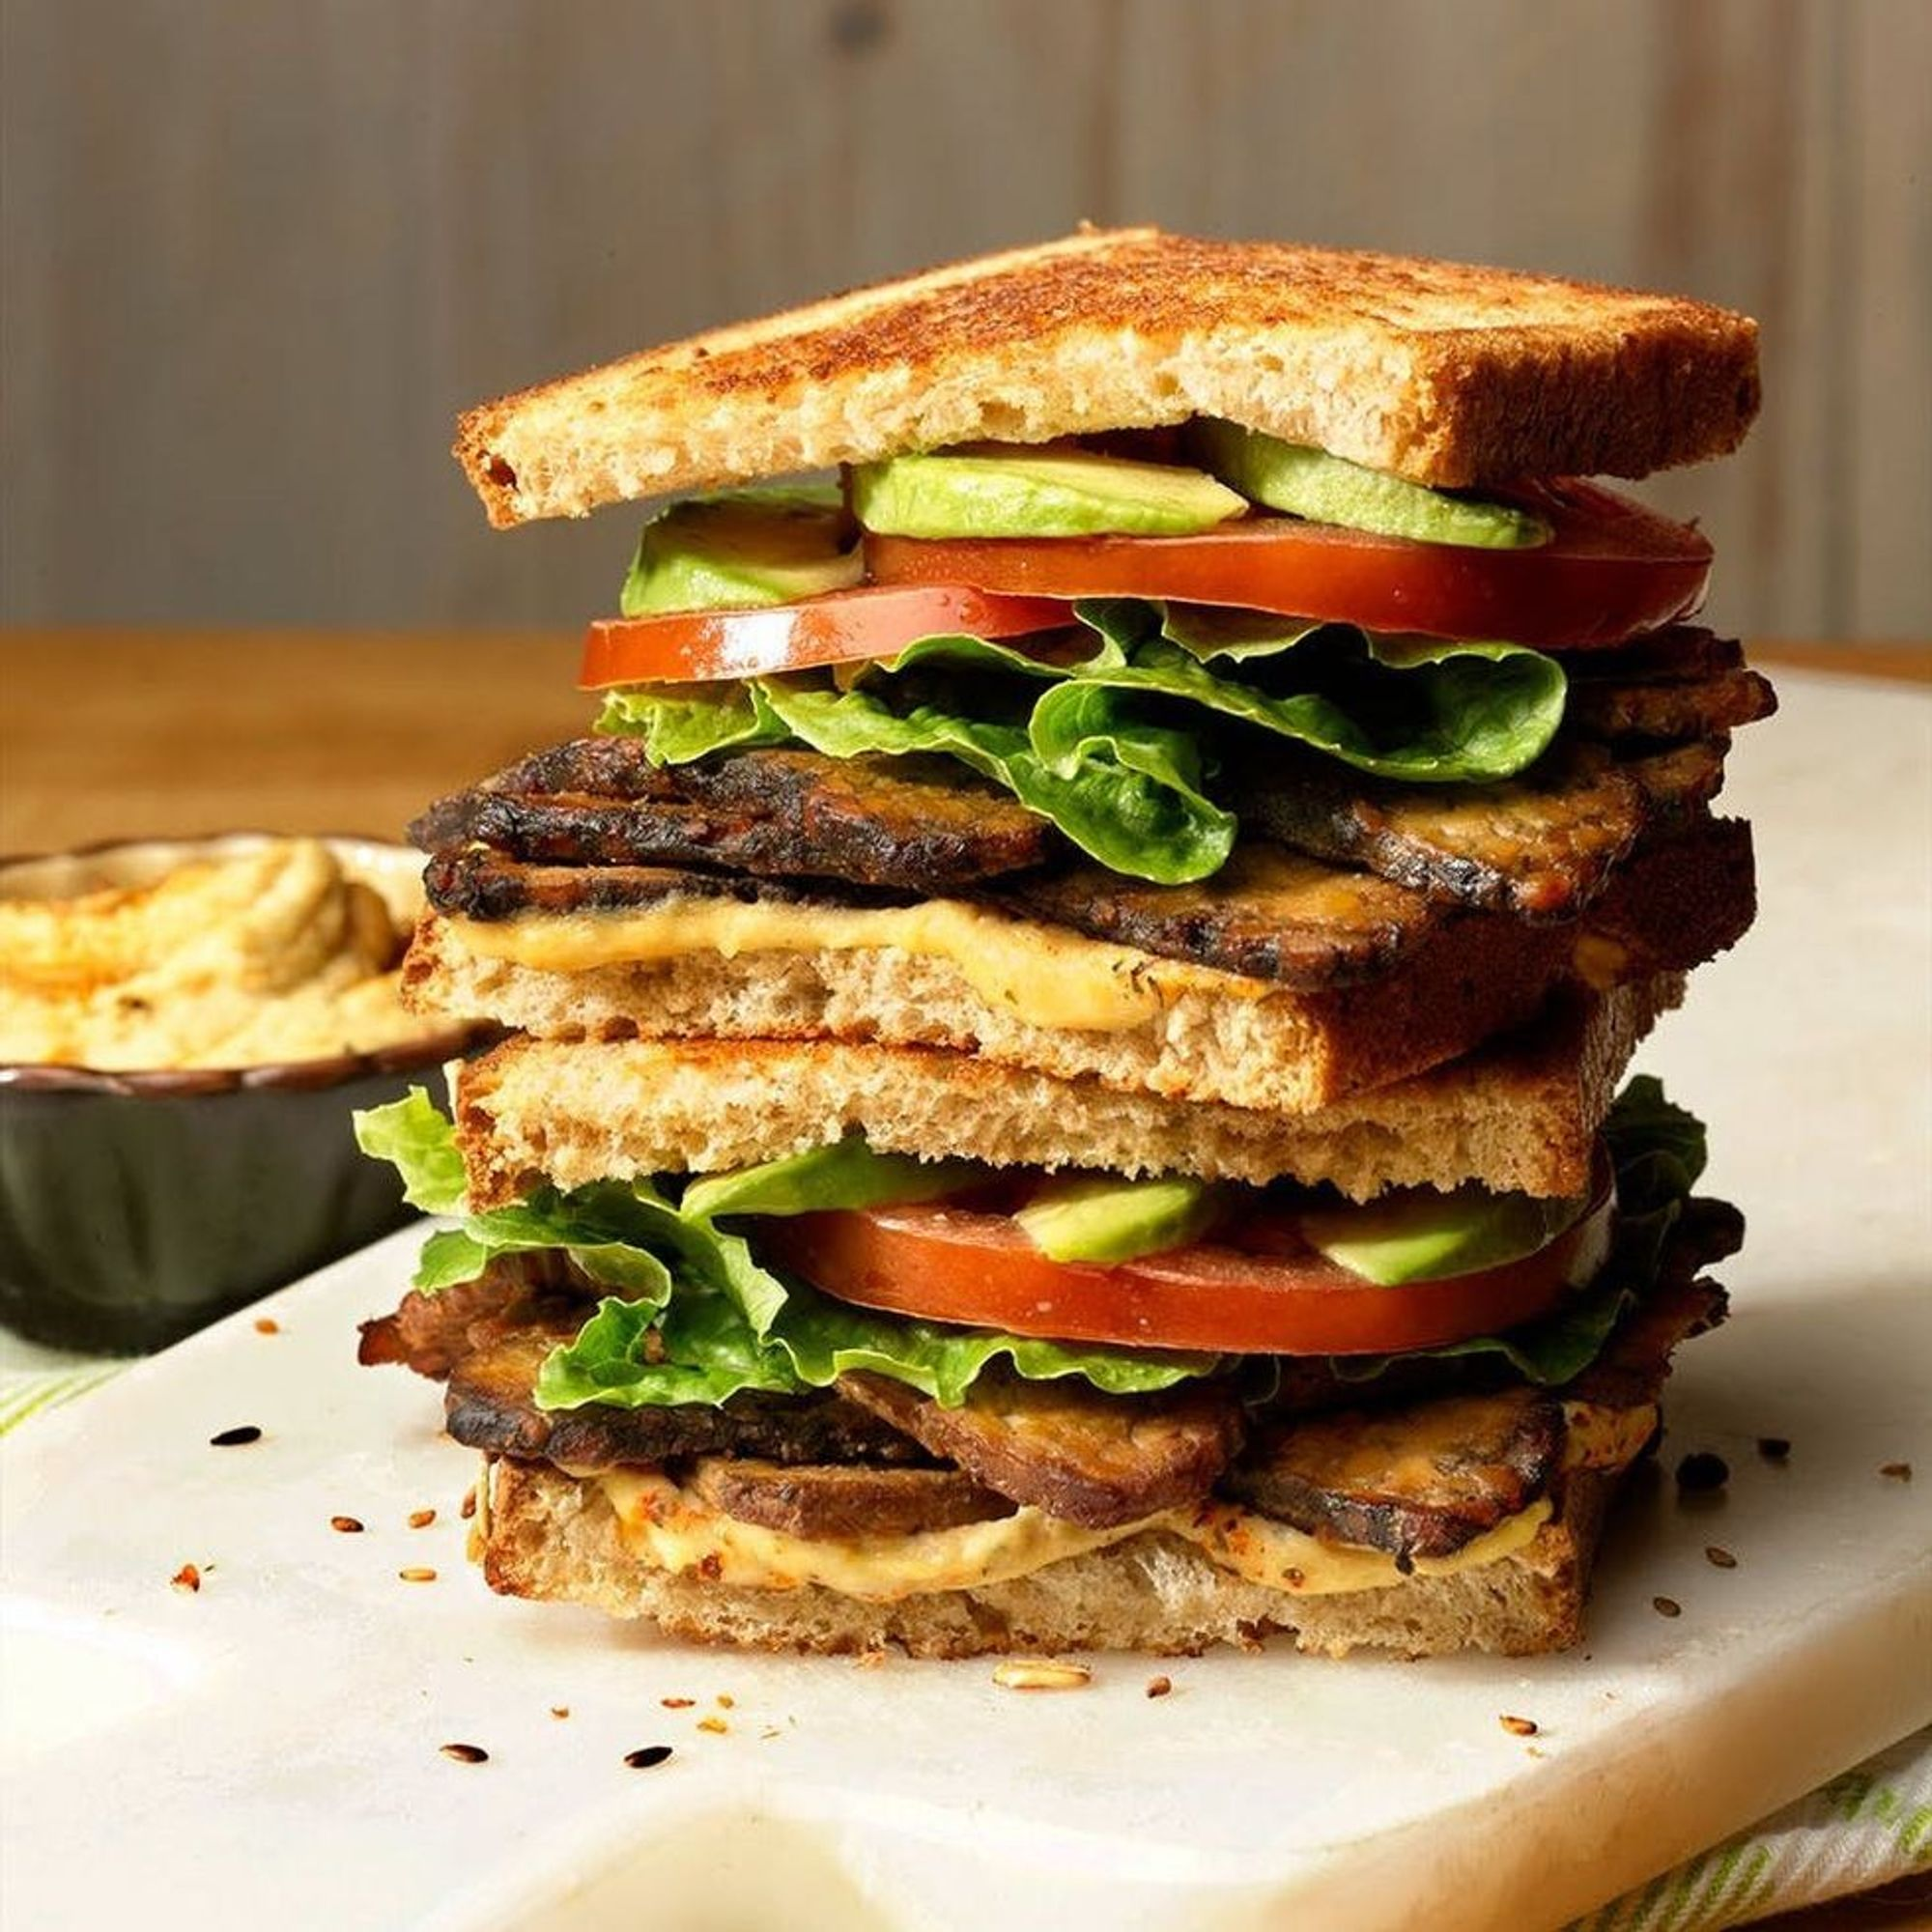 18 Vegan Sandwich Recipes That Make Lunch the Best Part of Your Day